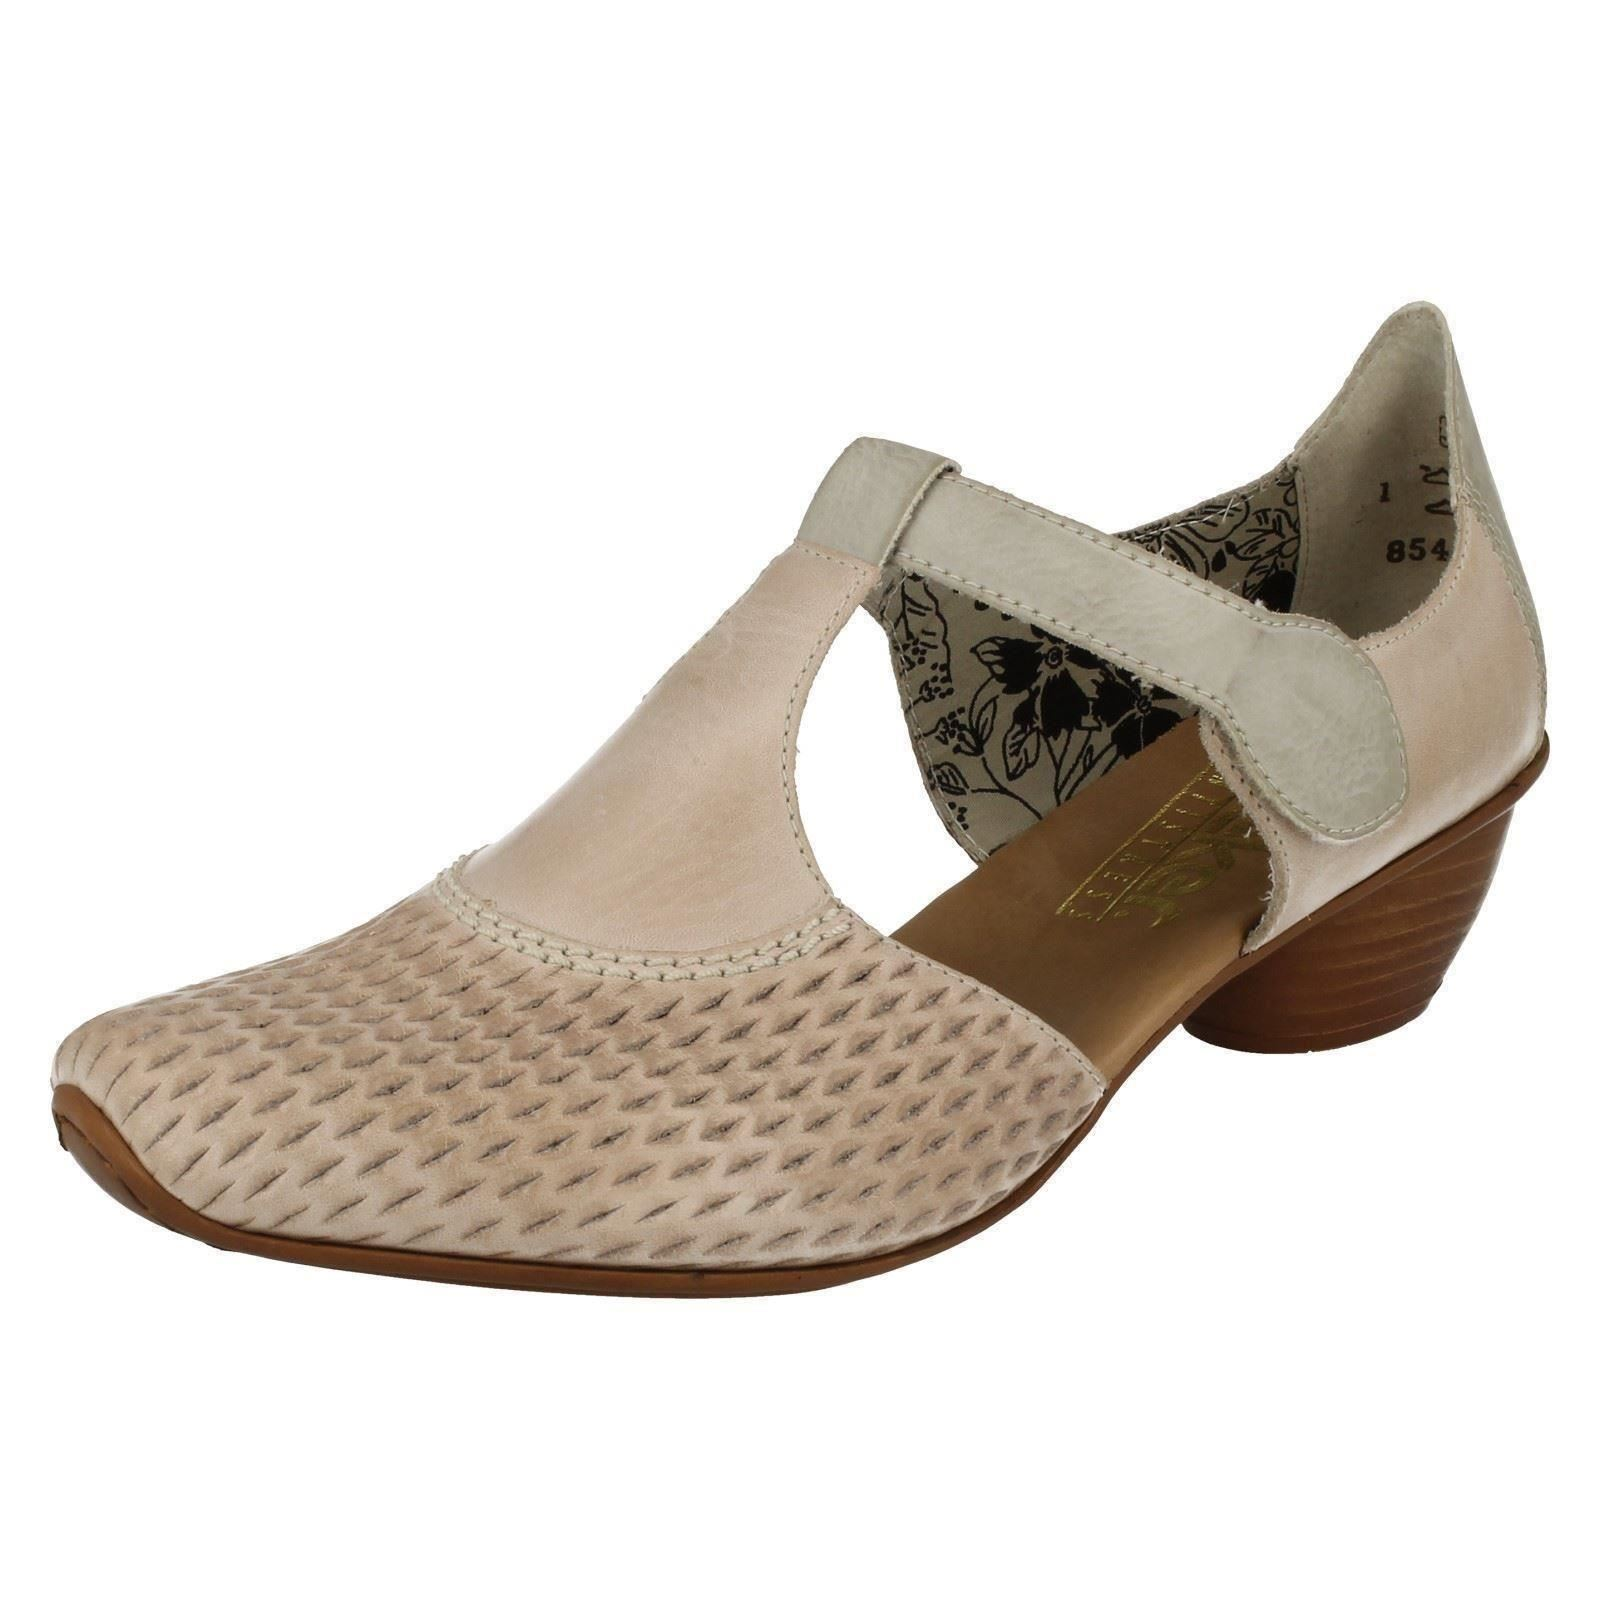 92d91e12af97 Rieker Ladies Shoes 43736 UK 6 Grey Combi. About this product. Picture 1 of  8  Picture 2 of 8 ...